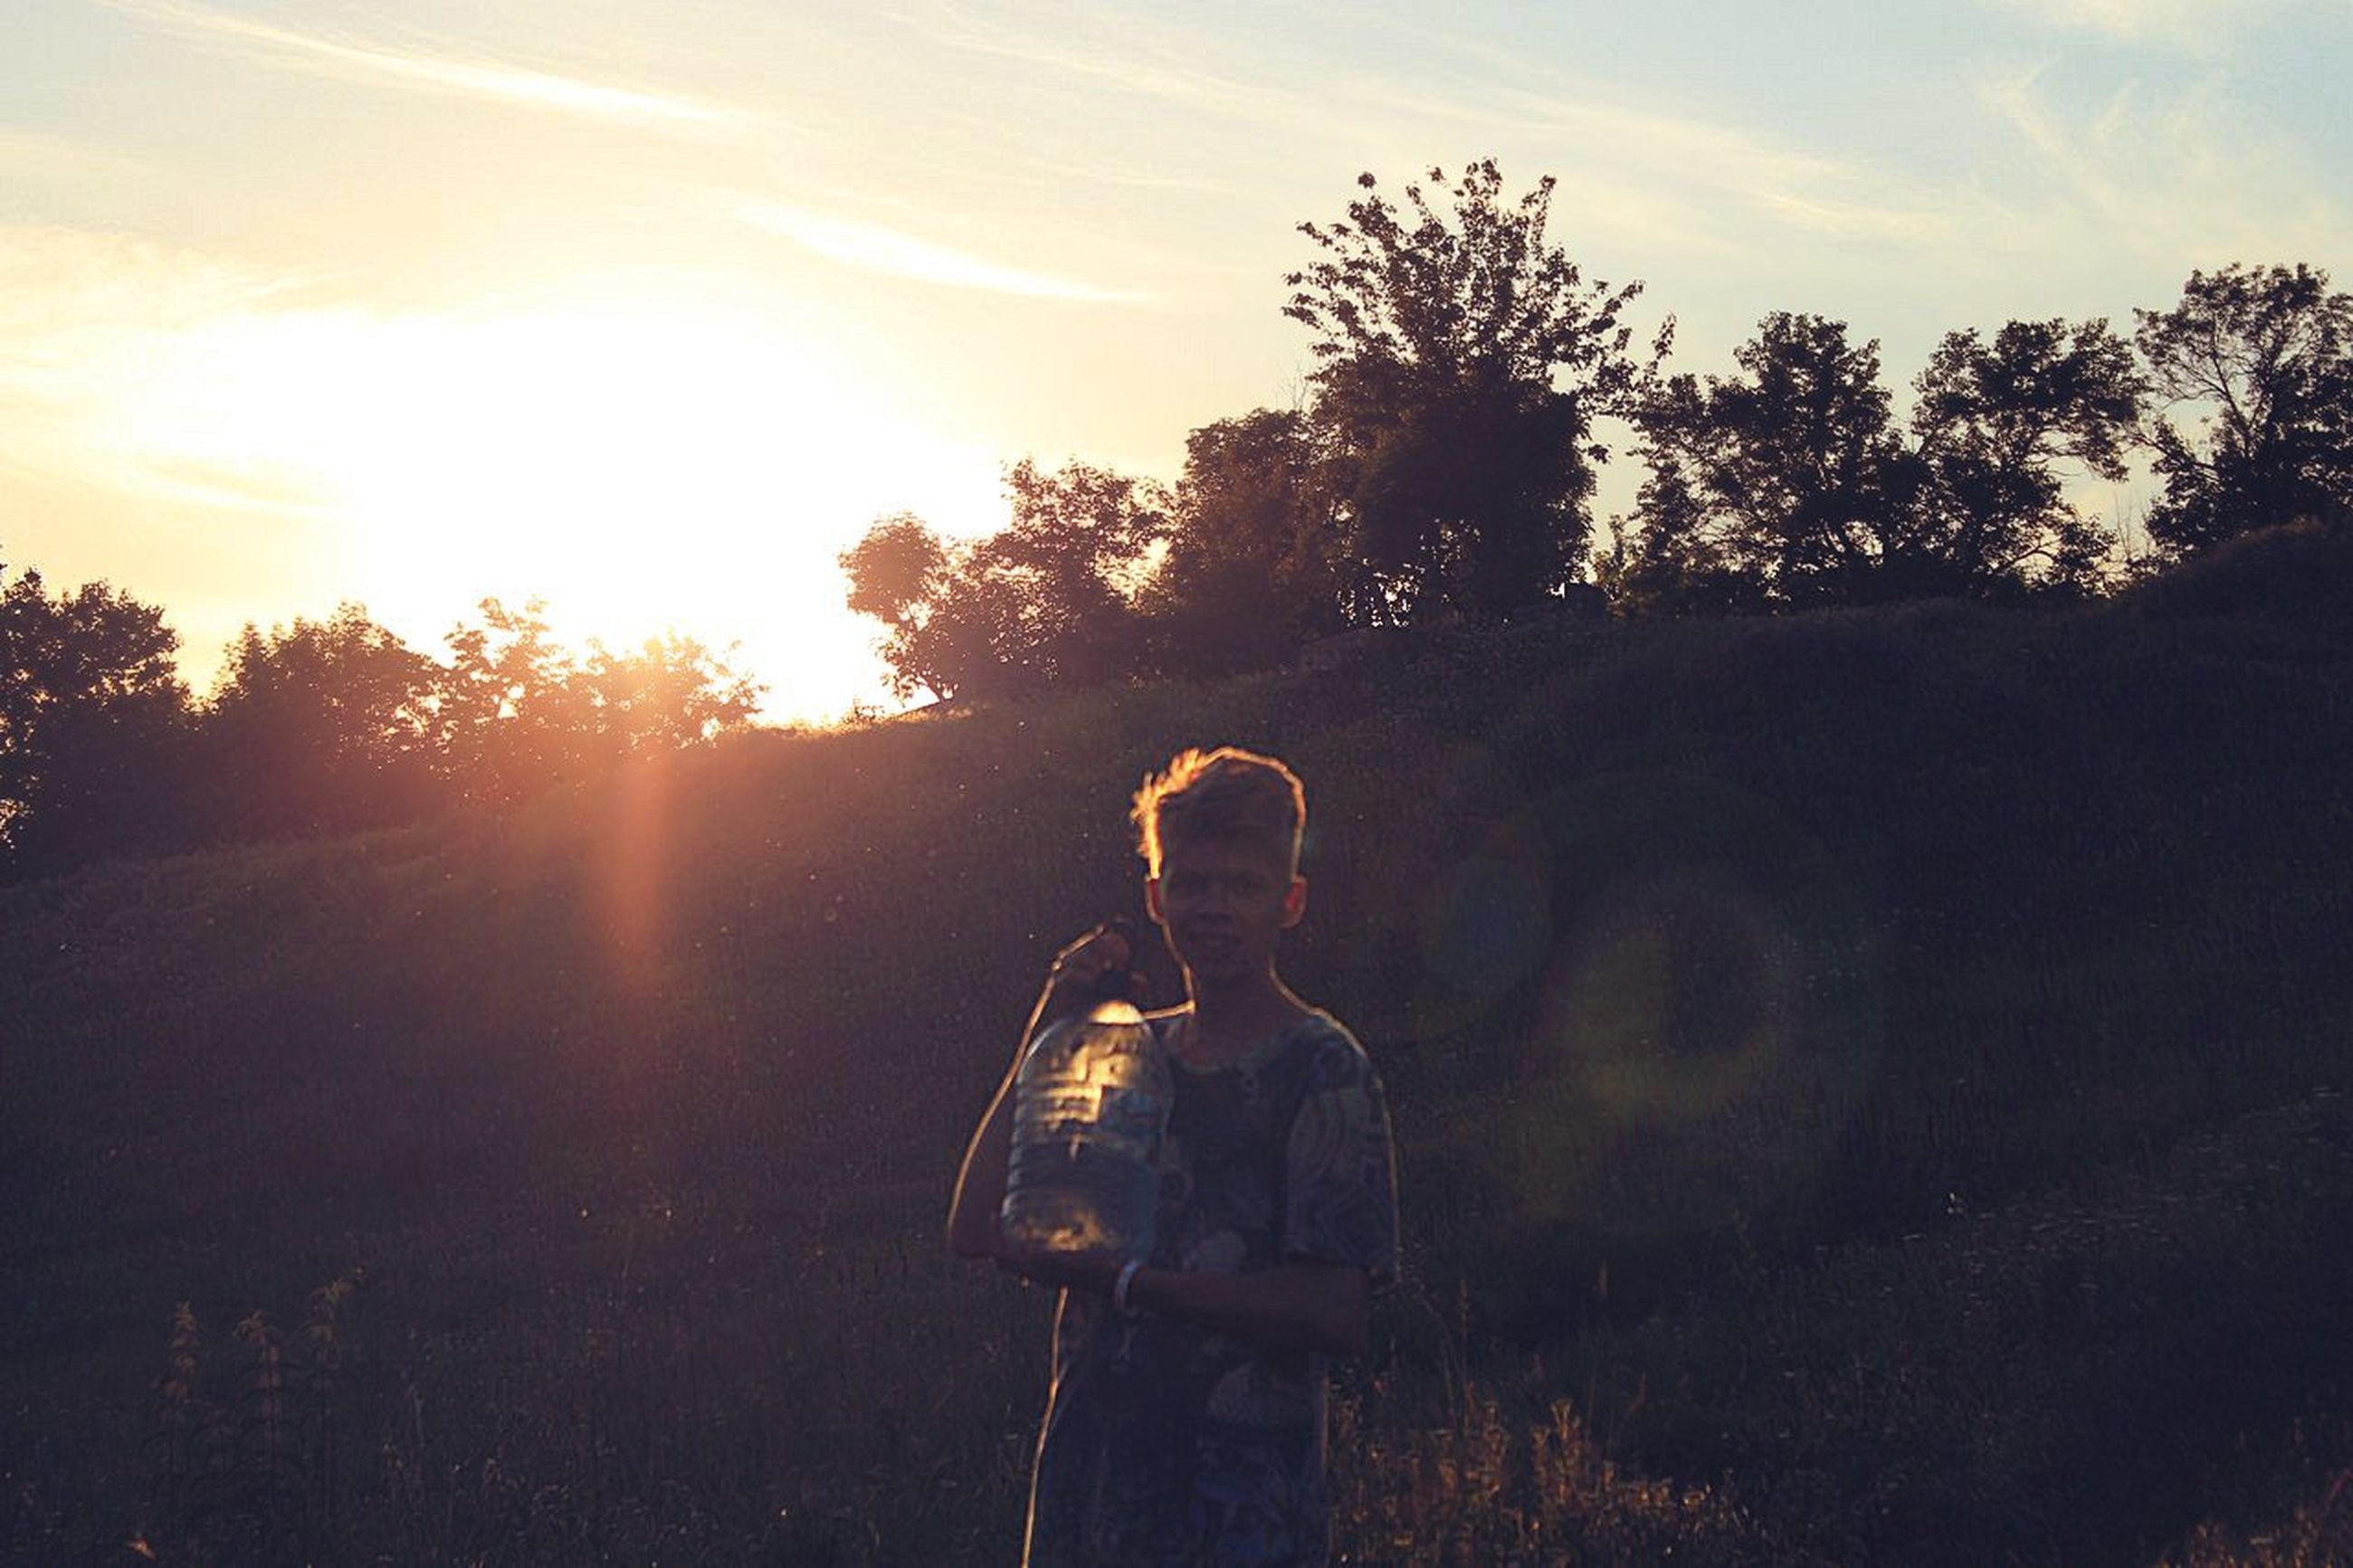 tree, sunset, silhouette, sky, sunlight, sun, leisure activity, lifestyles, outdoors, sunbeam, men, nature, holding, tranquility, technology, field, lens flare, photographing